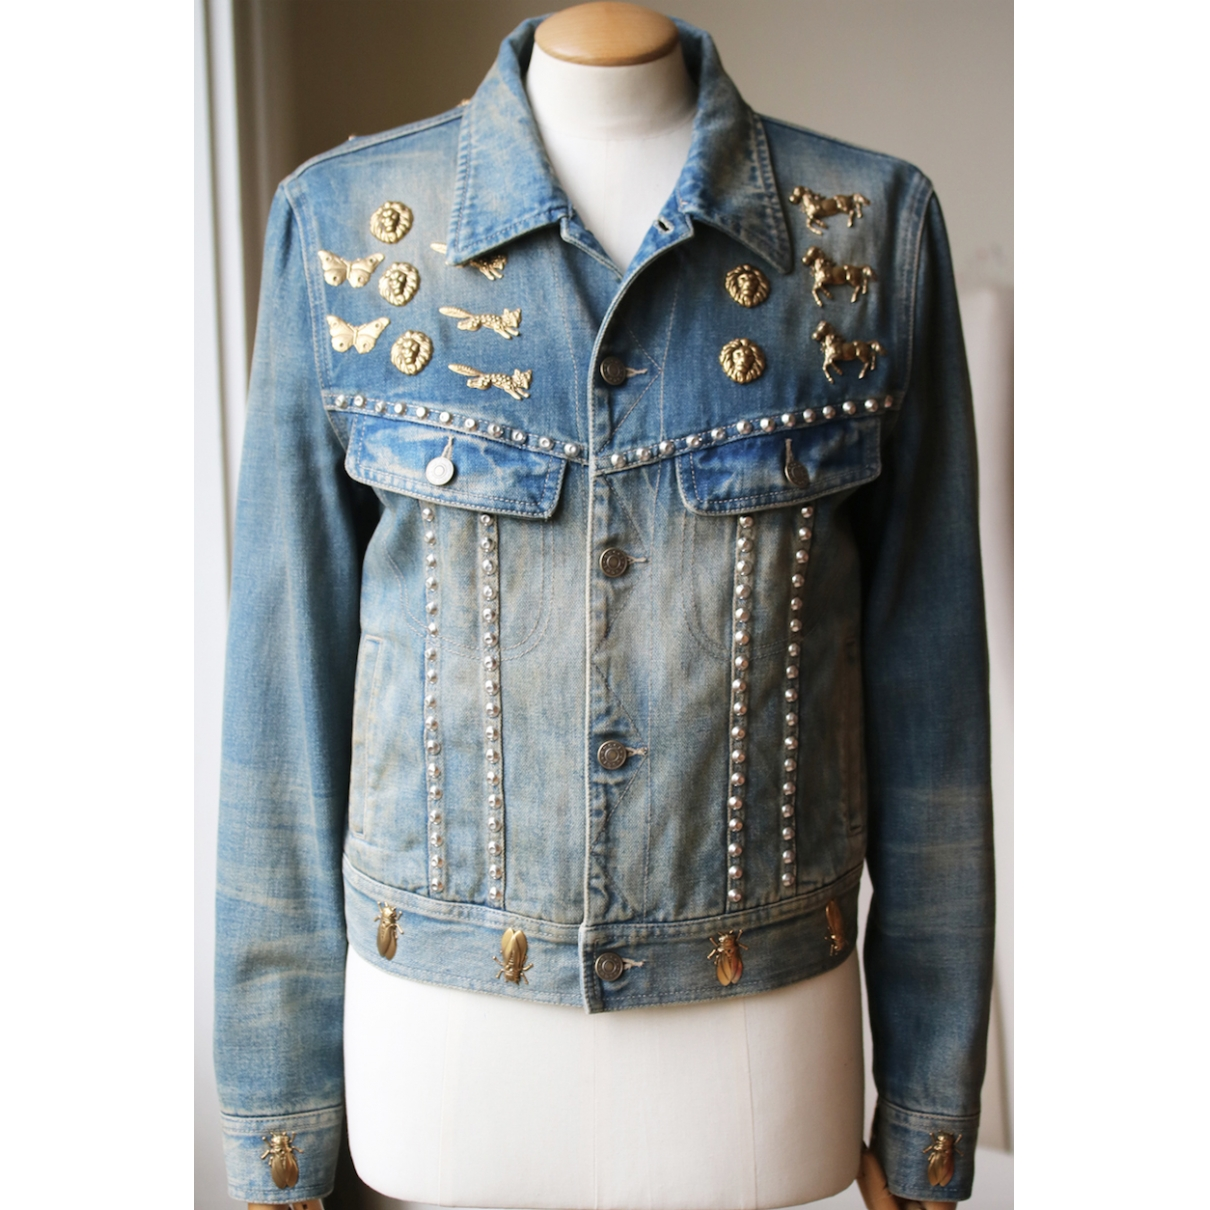 Gucci \N Blue Denim - Jeans jacket for Women 42 IT